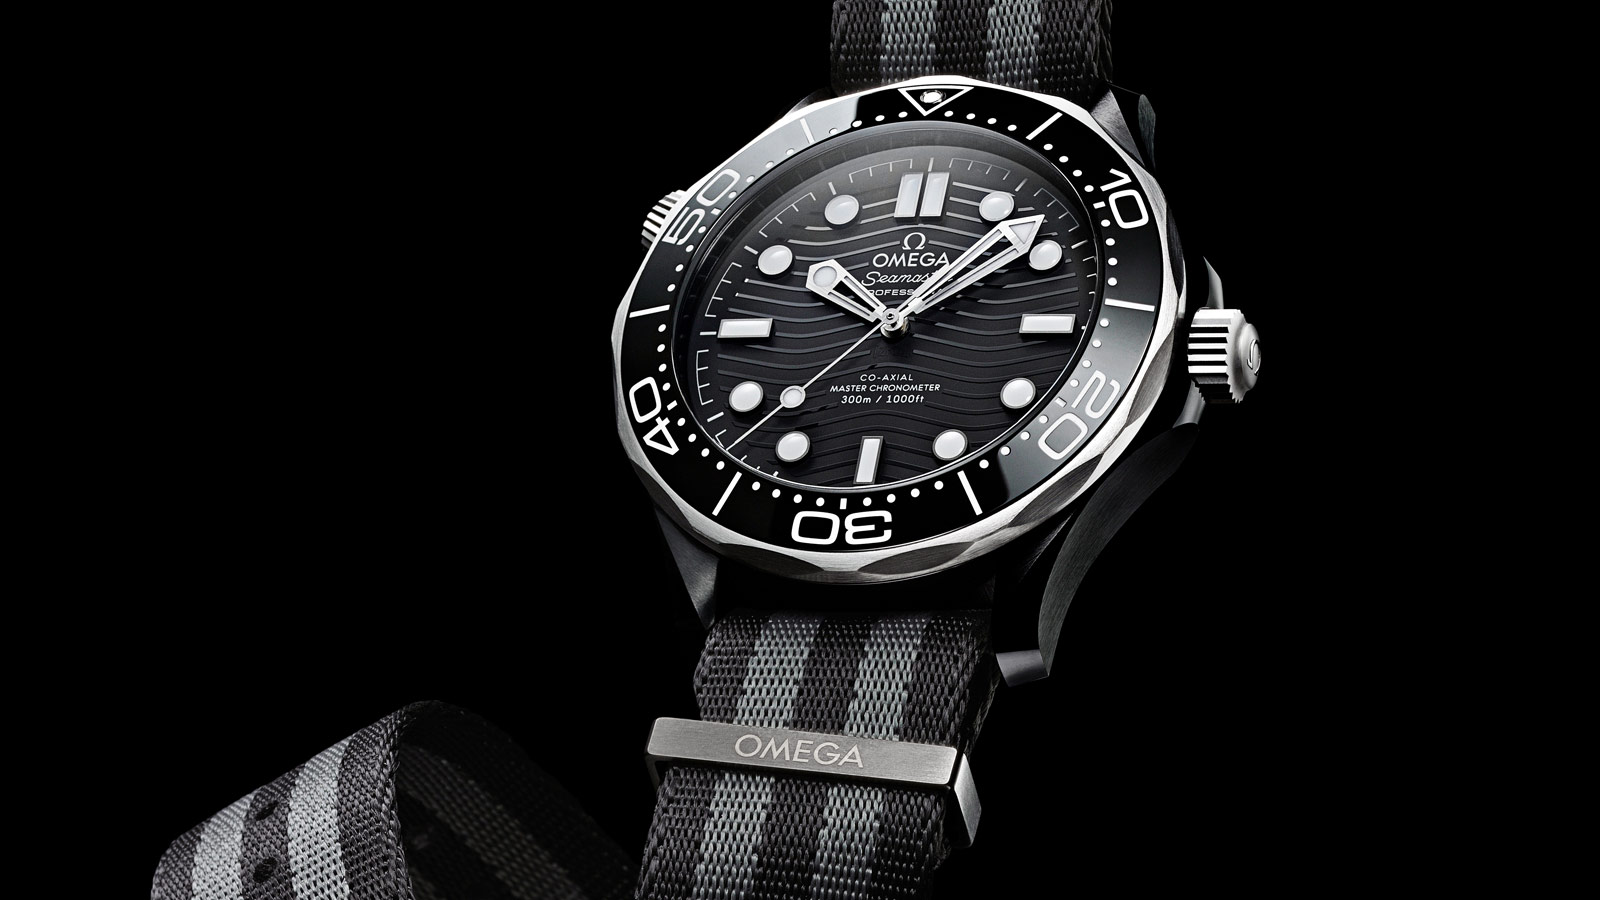 Seamaster Diver 300 M Diver 300M Omega Co‑Axial Master Chronometer 43.5 mm Watch - 210.92.44.20.01.002